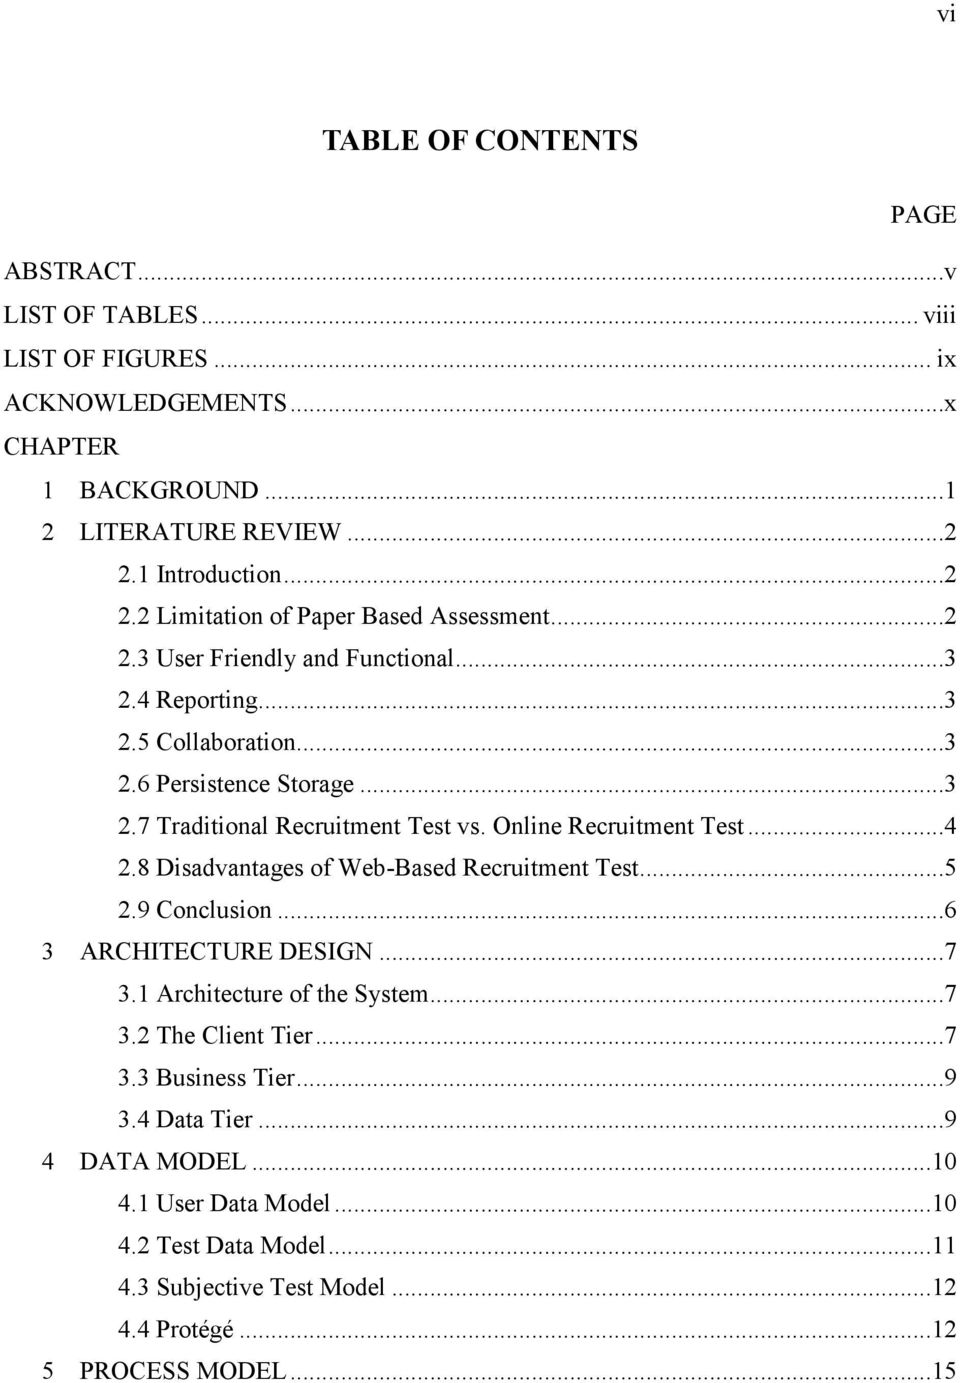 Dissertation and thesis manual sdsu